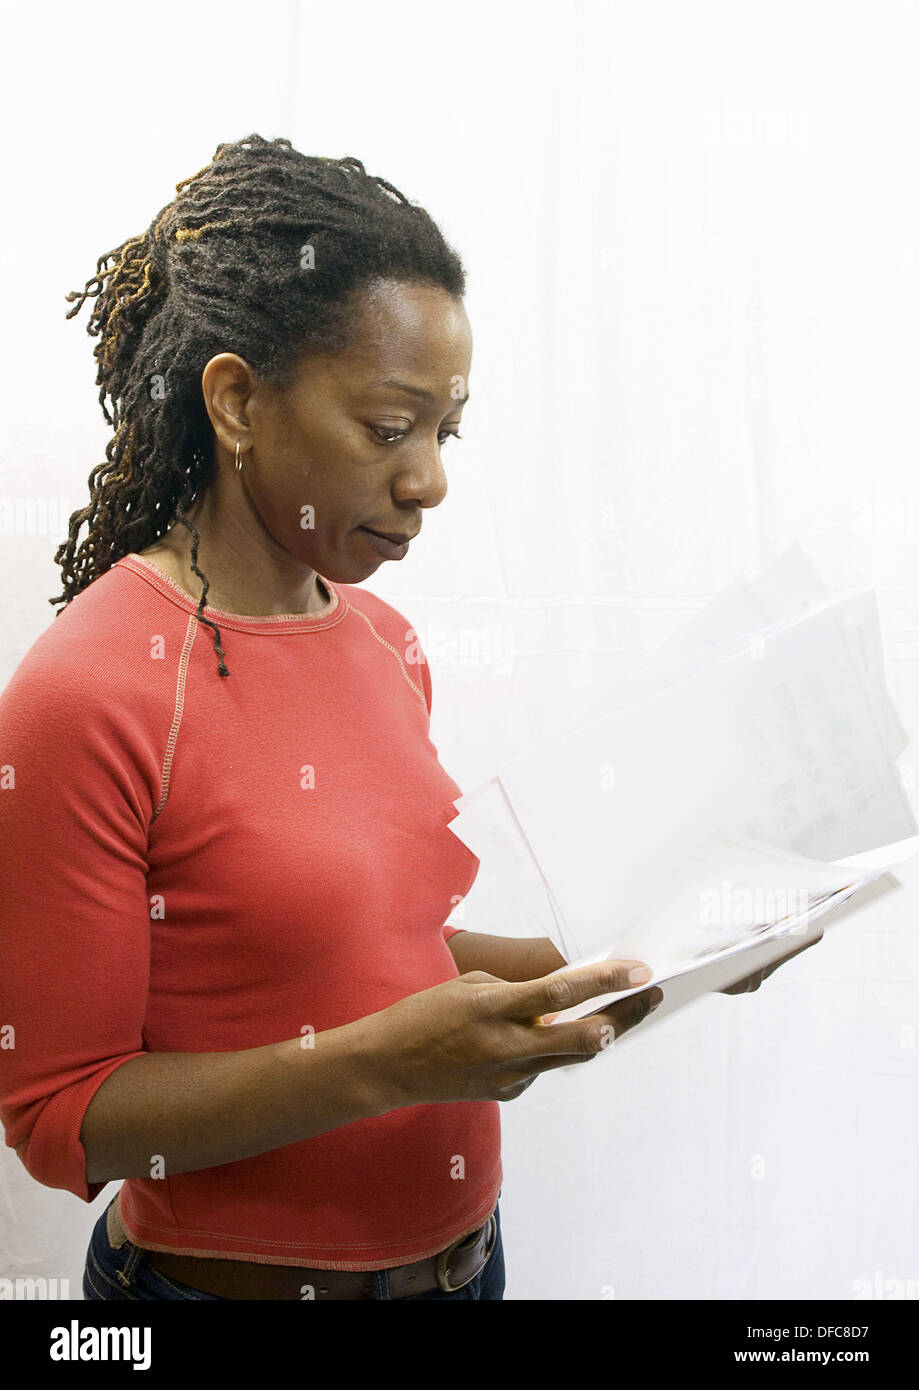 40 year old African American woman with dredlocks in her hair looking over some papers  Side view  Copyspace  Isolated on white - Stock Image